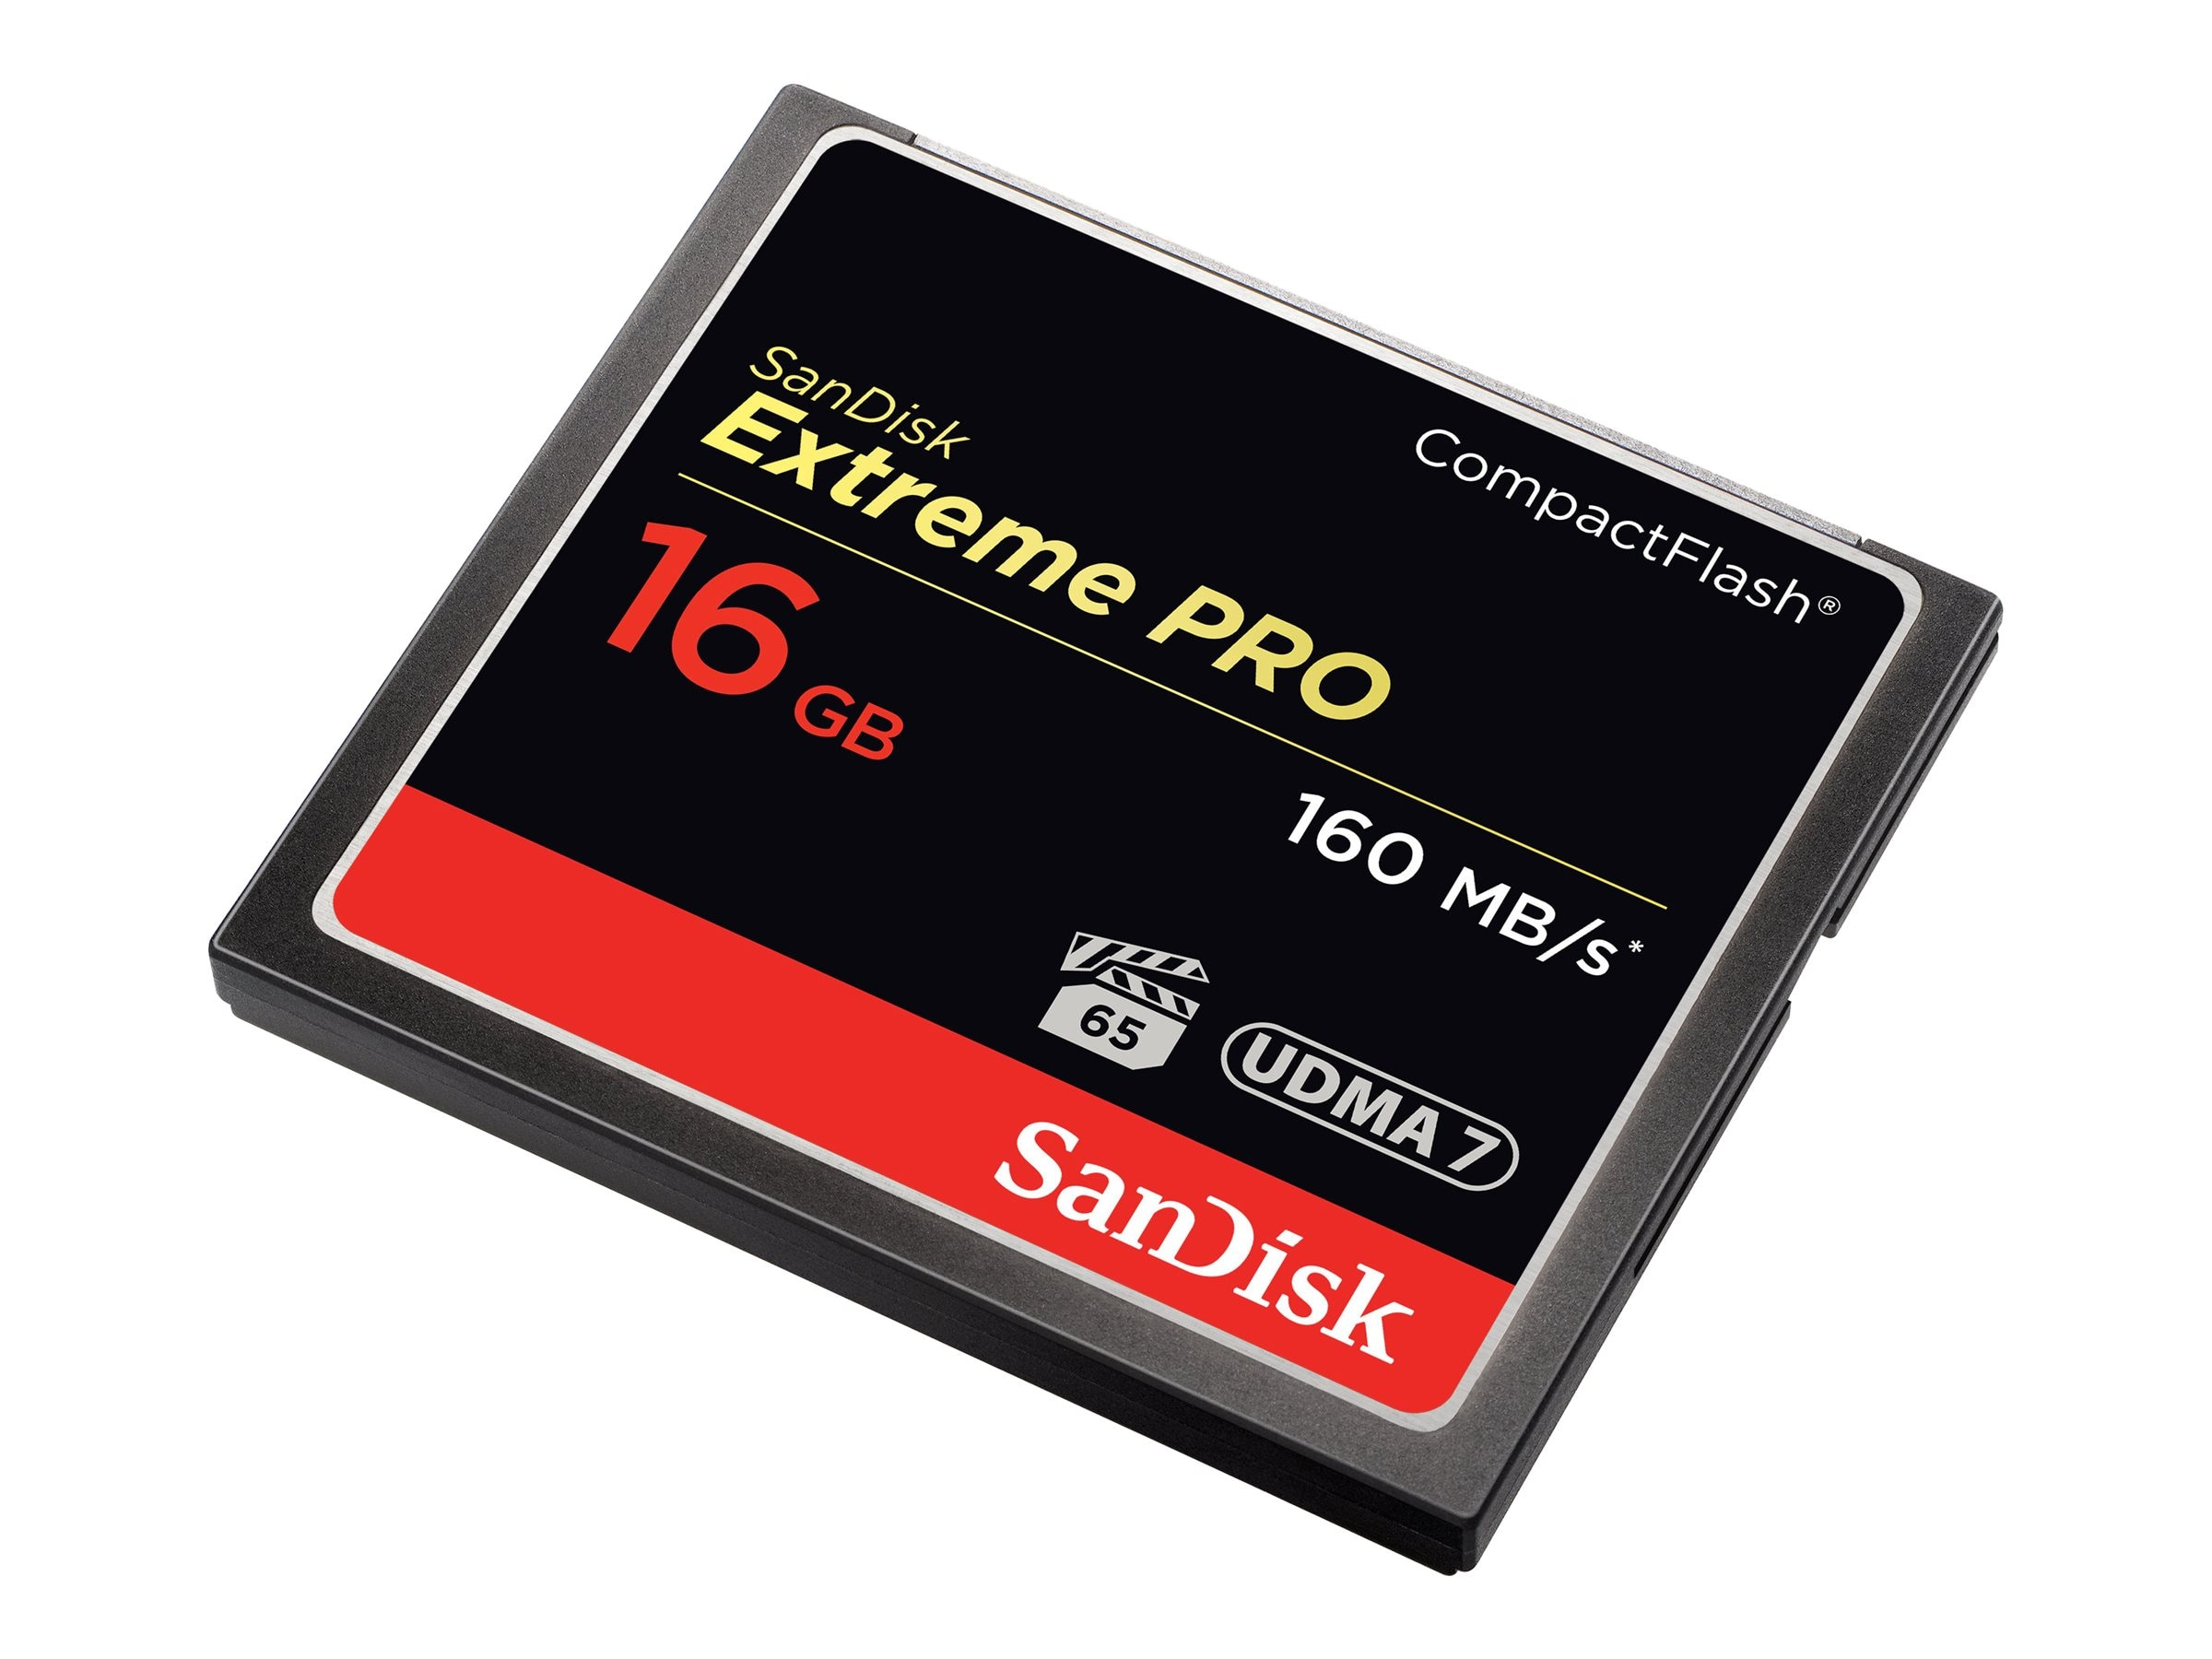 SanDisk 16GB CompactFlash Extreme Pro Memory Card